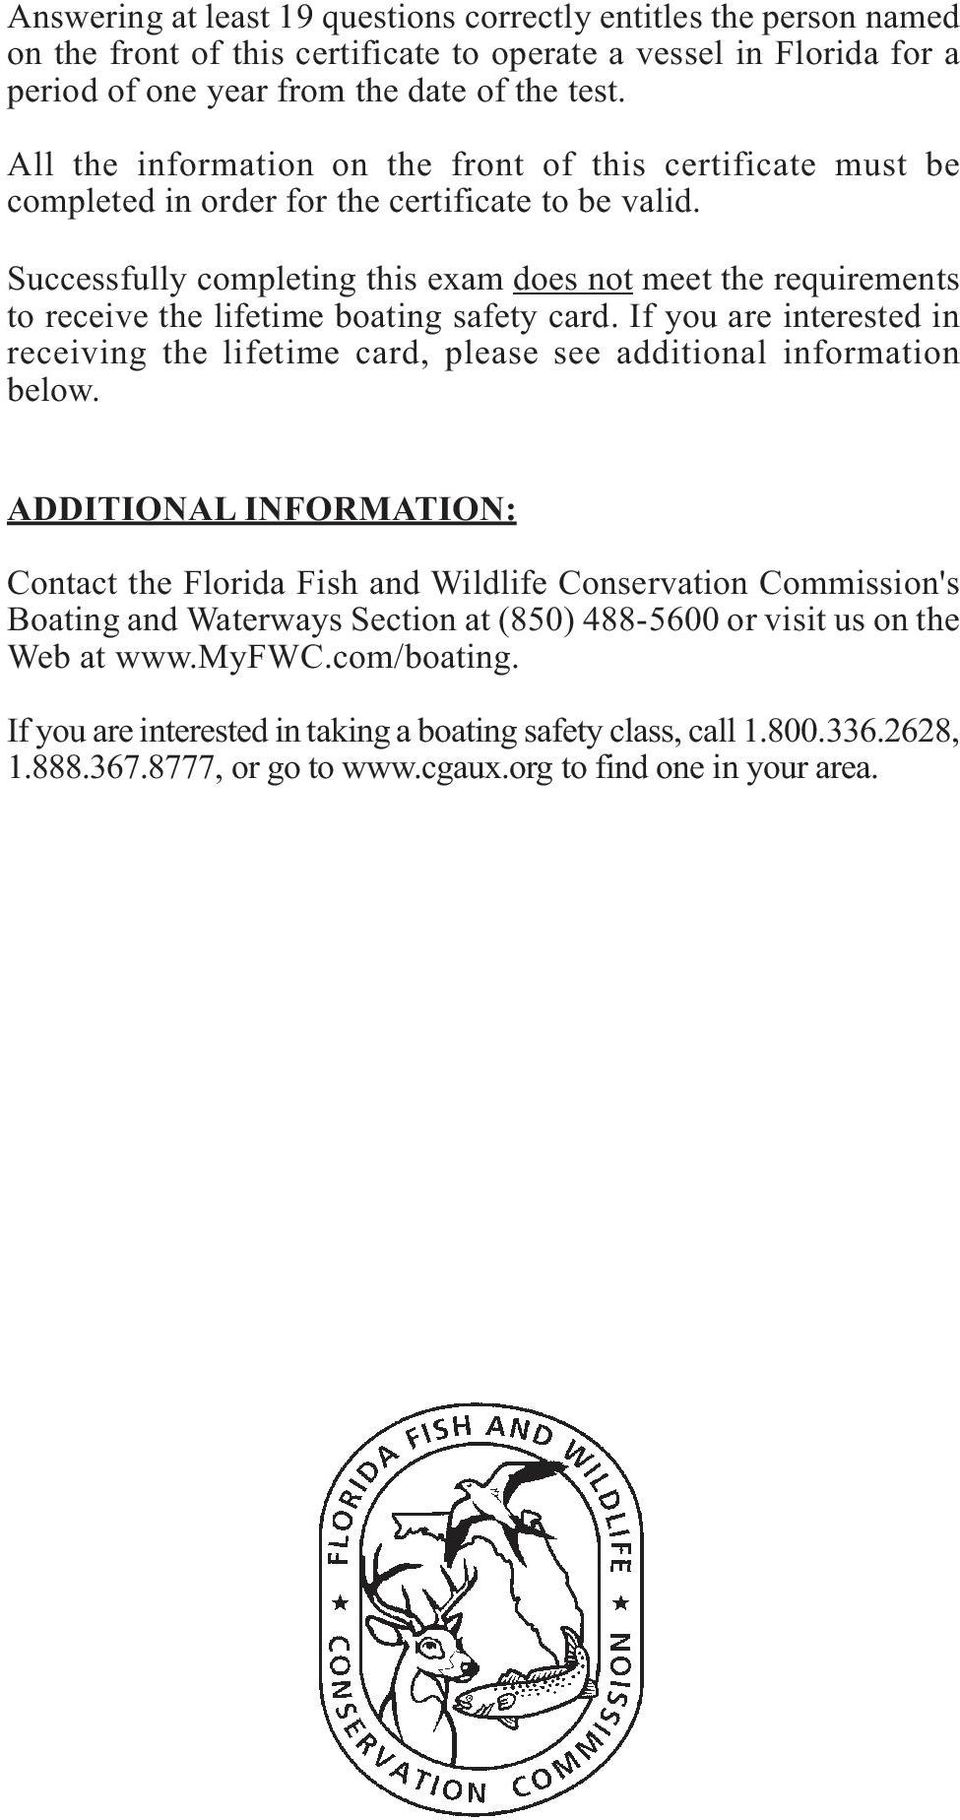 BOATER S COPY INSTRUCTIONS FOR PROCTOR: AFTER BOATER